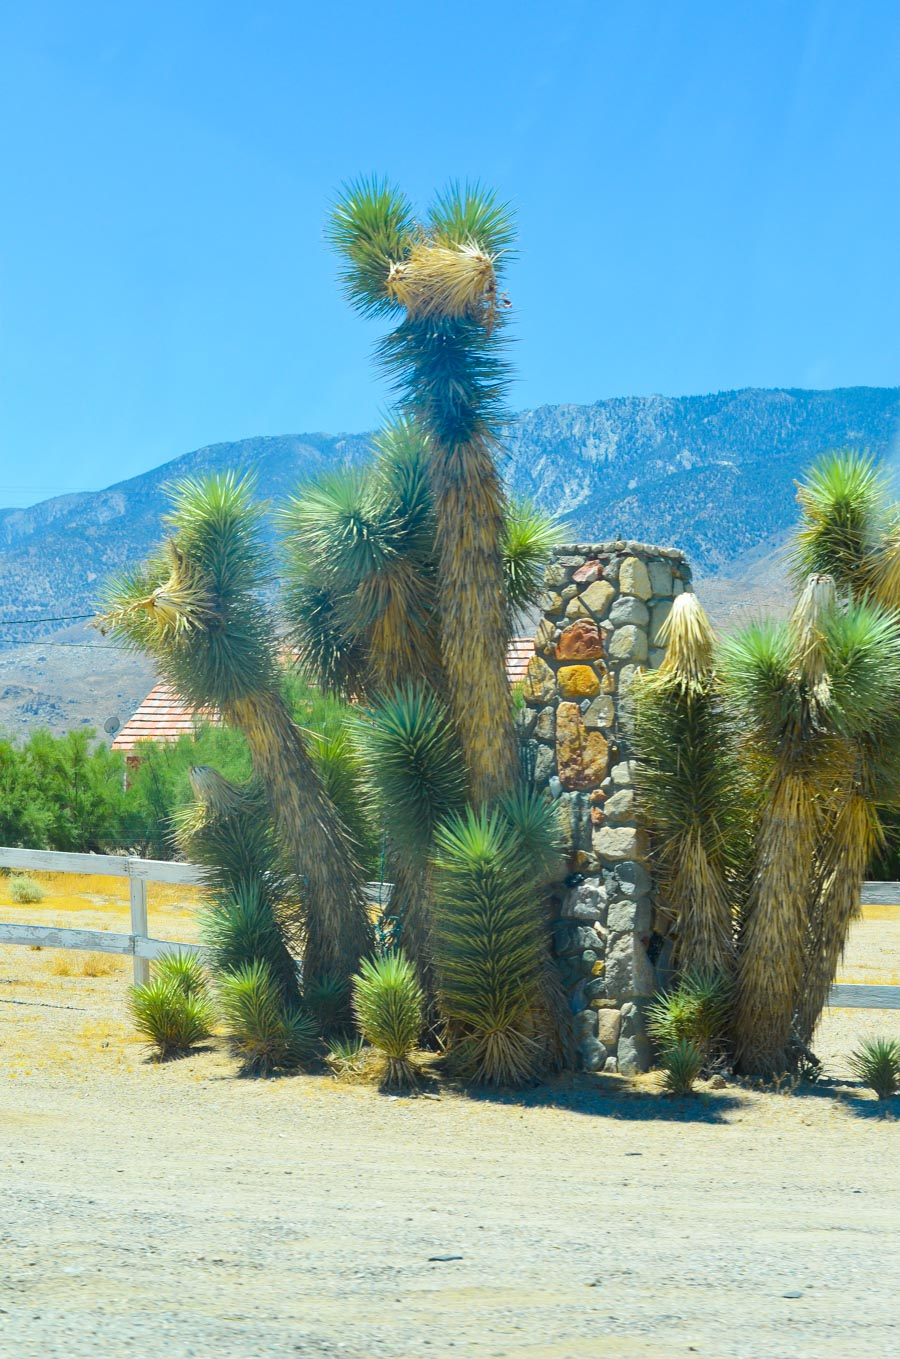 Highway 395 Photos Diary Mono Lake, California to InyoKern + Indian Wells- Luci's Morsels -- California Travel Blogger-1